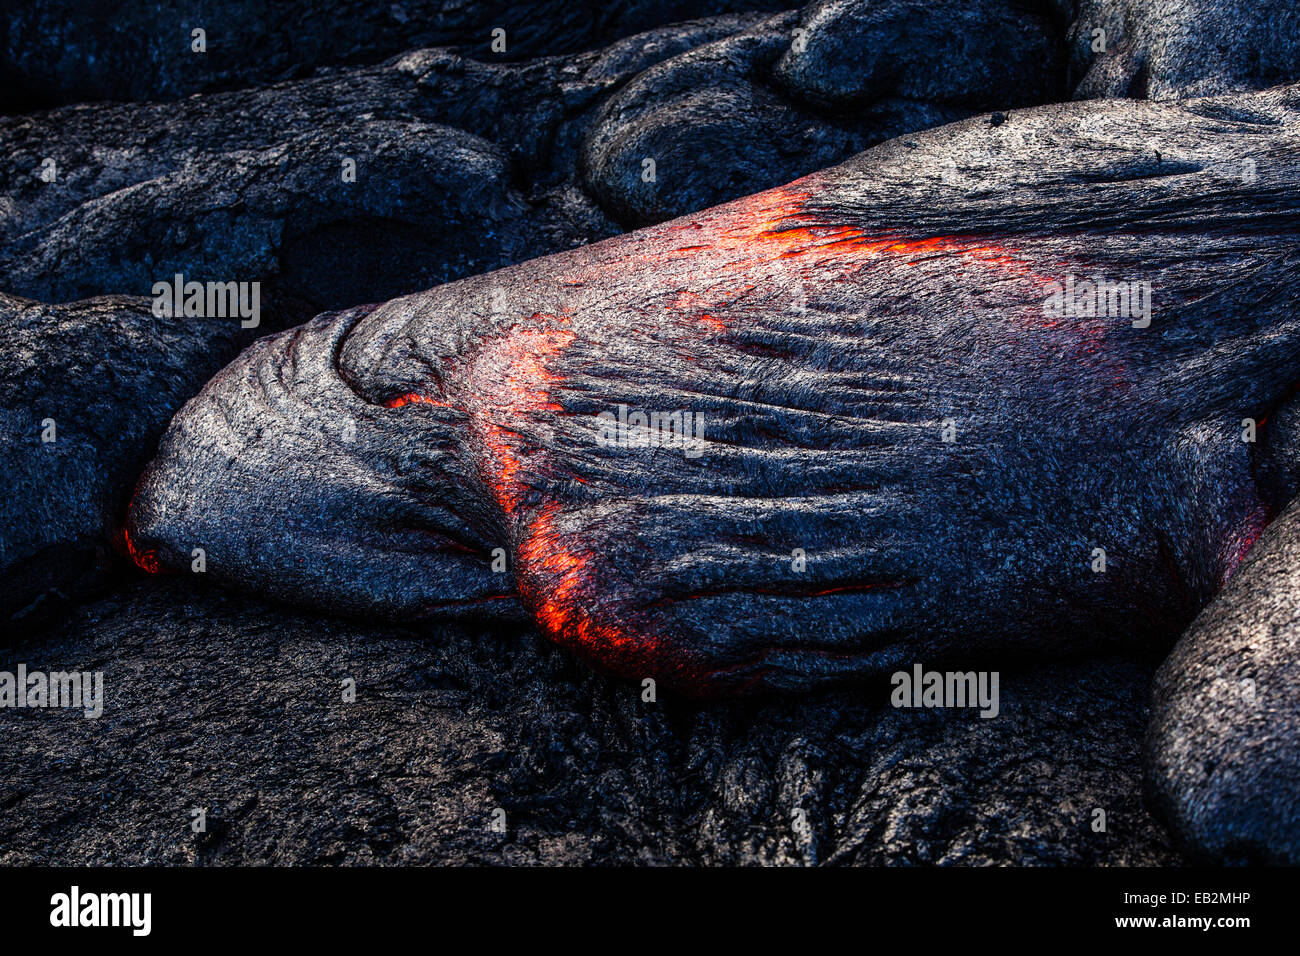 Puʻu ʻŌʻō volcano, volcanic eruption, glowing hot lava flowing, Volcanoes-Nationalpark, Big Island, Hawaii, United - Stock Image